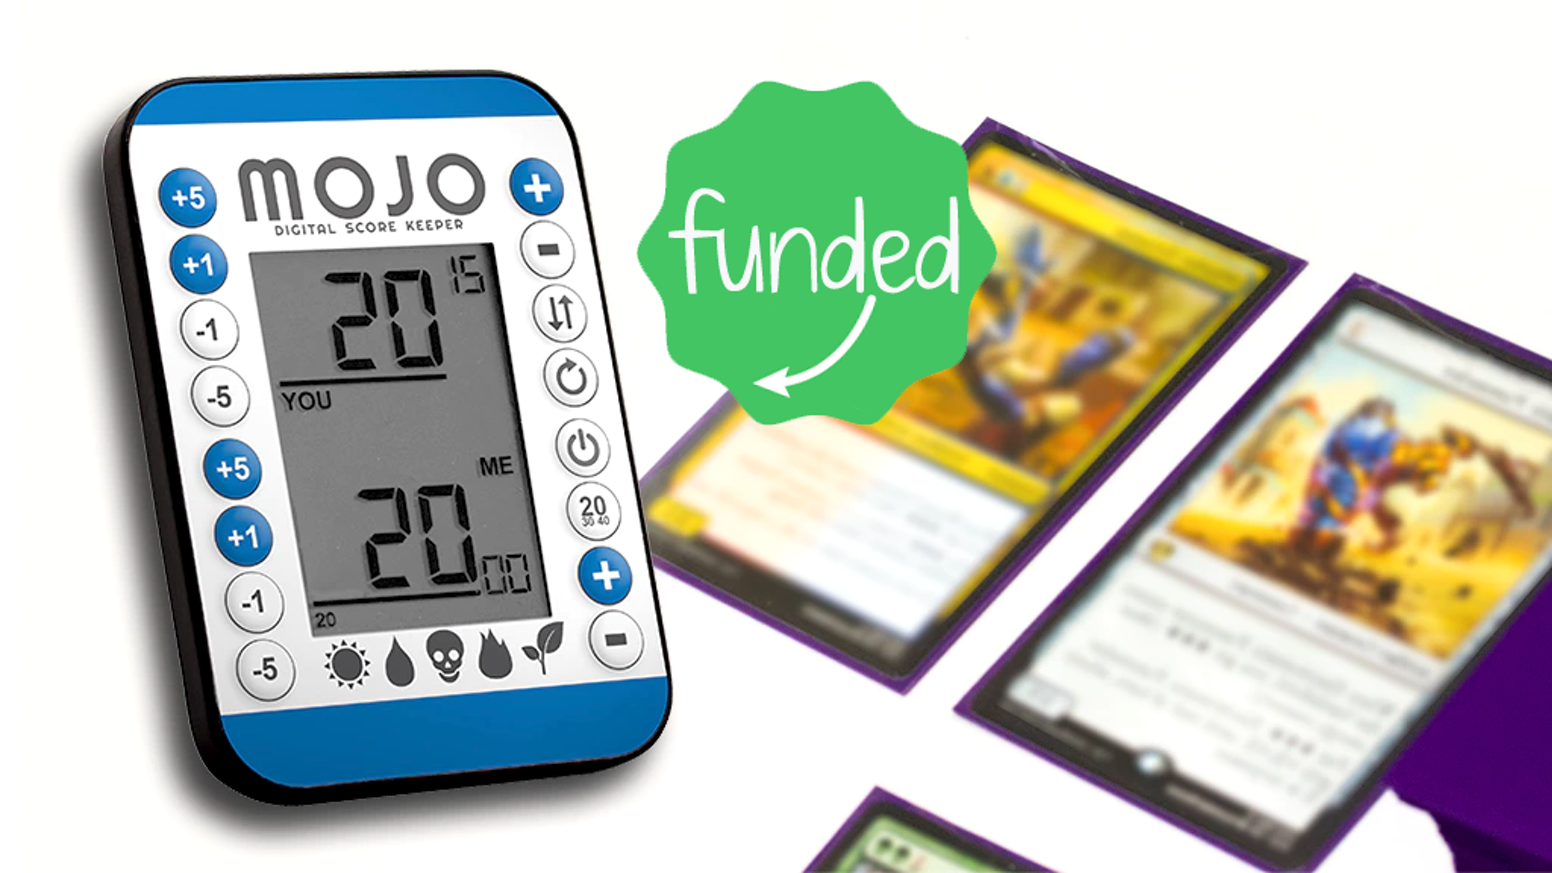 Mojo is the first flippable, shareable, dedicated, digital device for tabletop games with a secondary counter for energy, poison, etc.